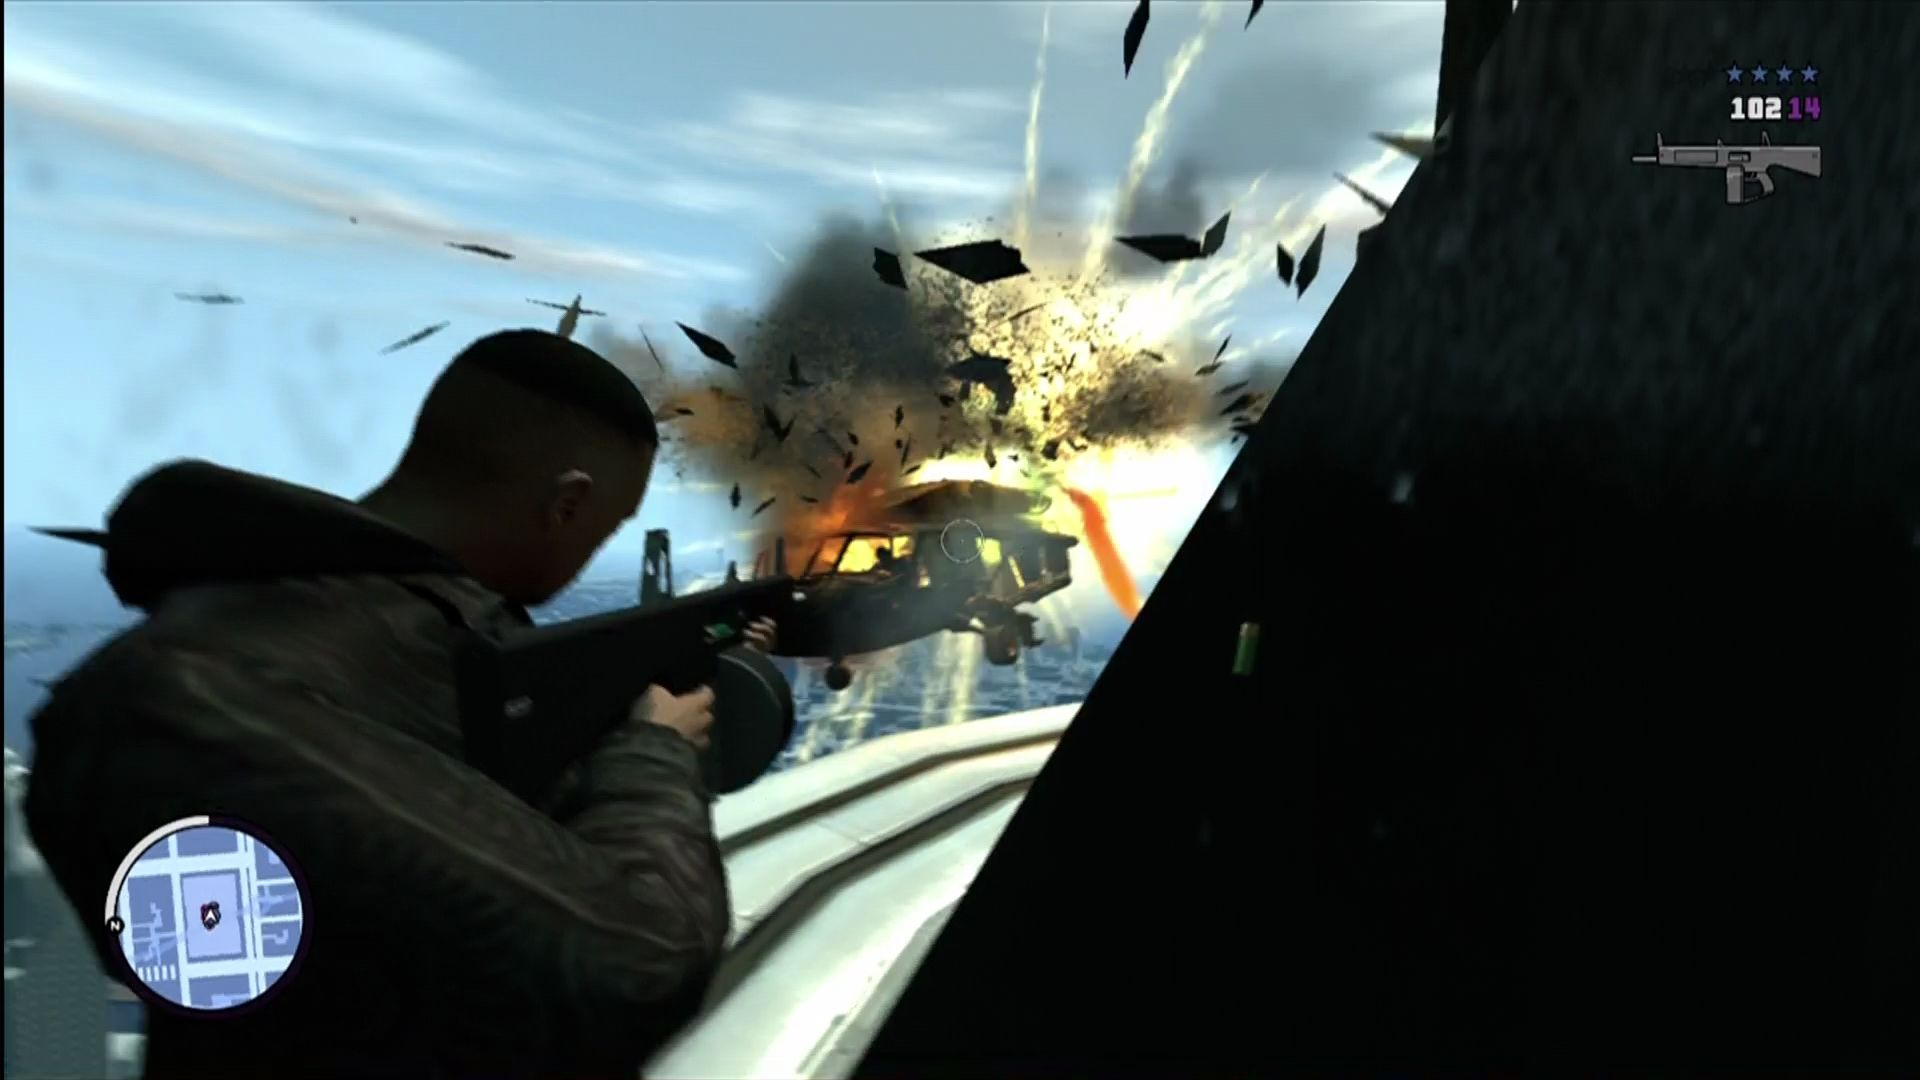 Grand Theft Auto: The Ballad of Gay Tony Xbox 360 New automatic shotgun with exploding shells. I like!